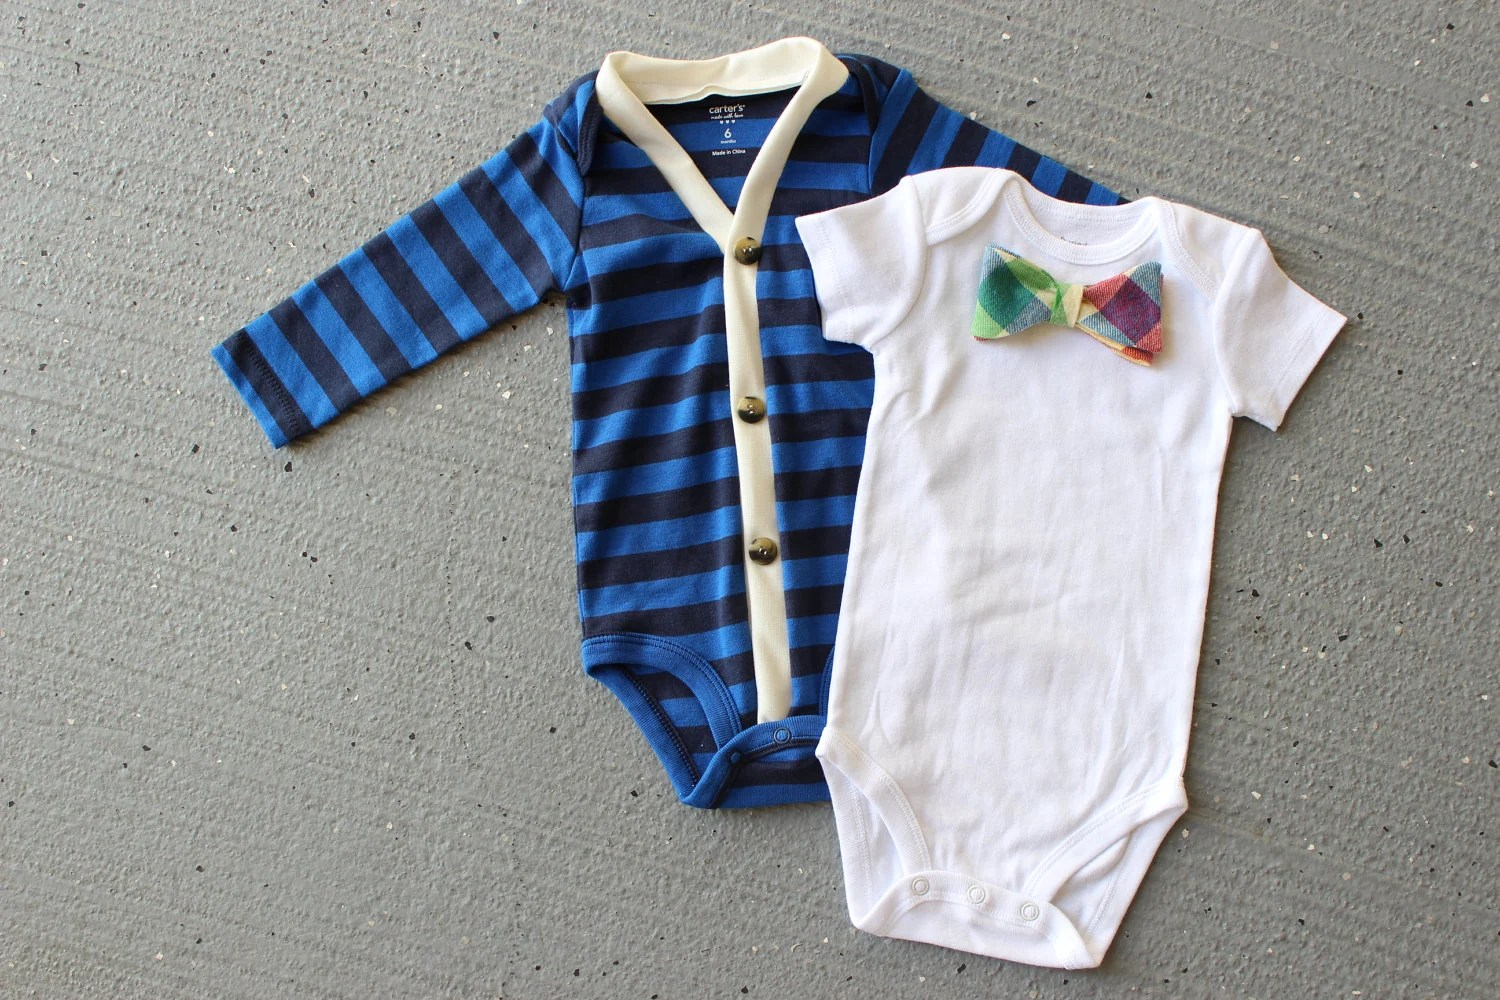 Cardigan and Bow Tie Onesie Set - Trendy Baby Boy - Blue and Retro Plaid